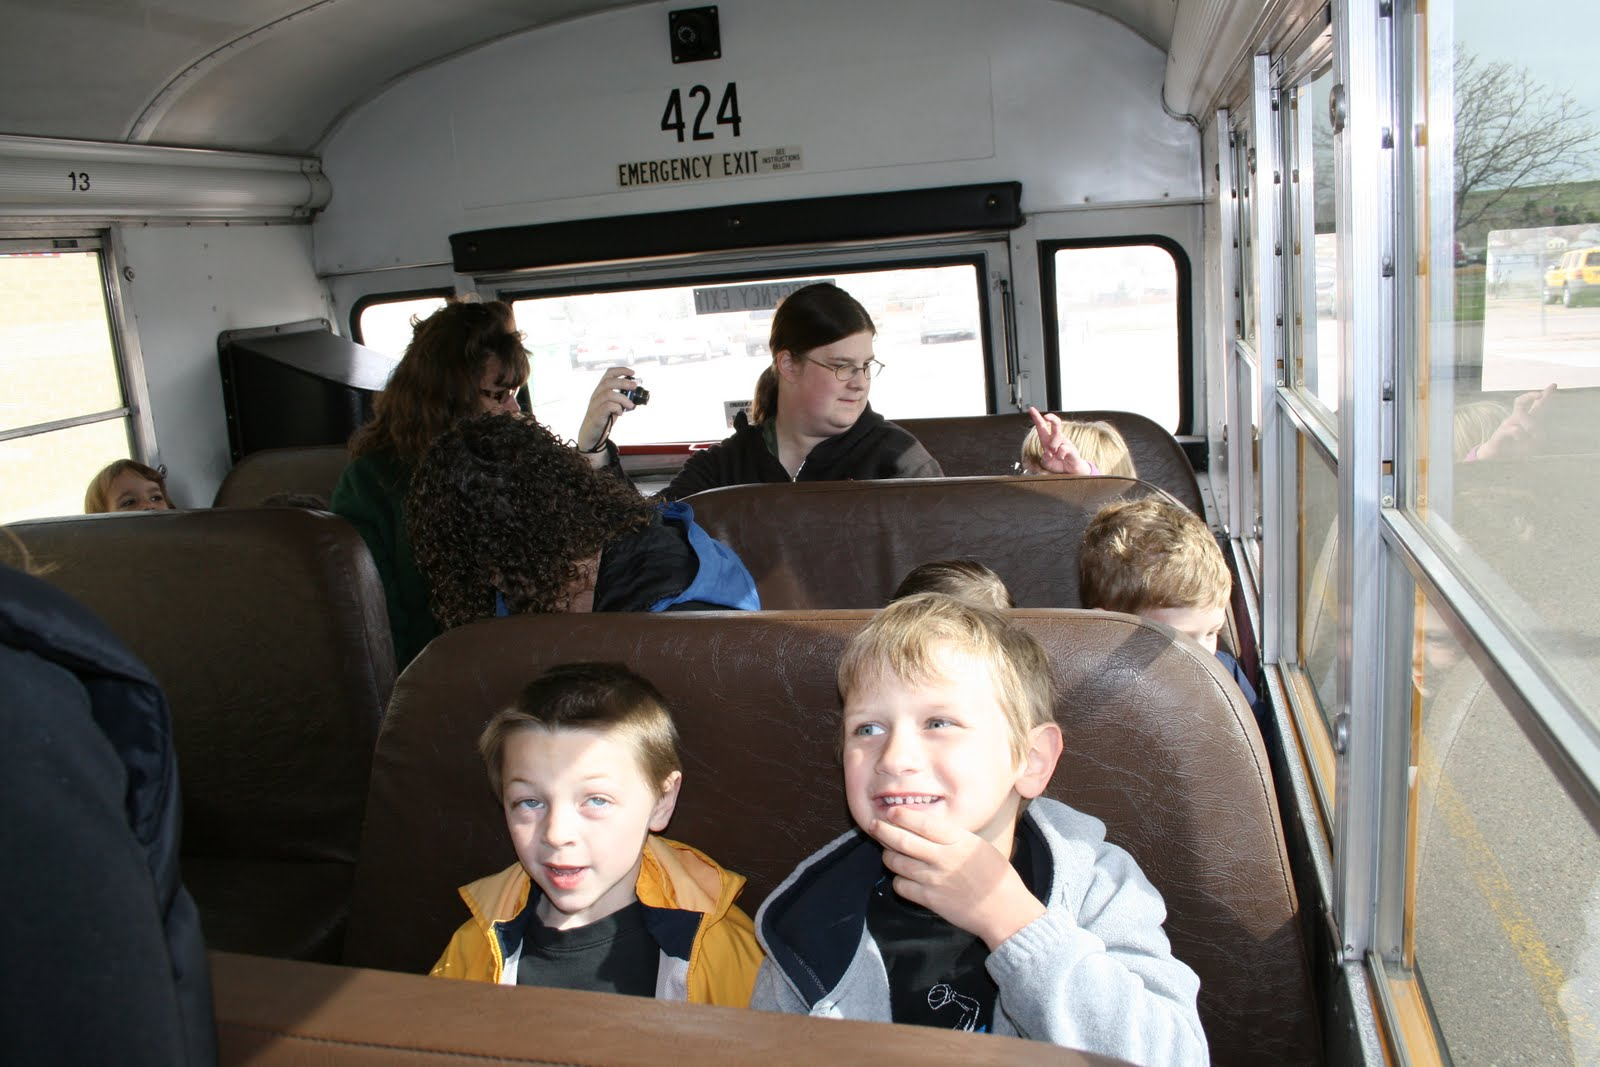 a bus ride Official website of the mbta -- schedules, maps, and fare information for greater boston's public transportation system, including subway, commuter rail, bus routes, and boat lines.